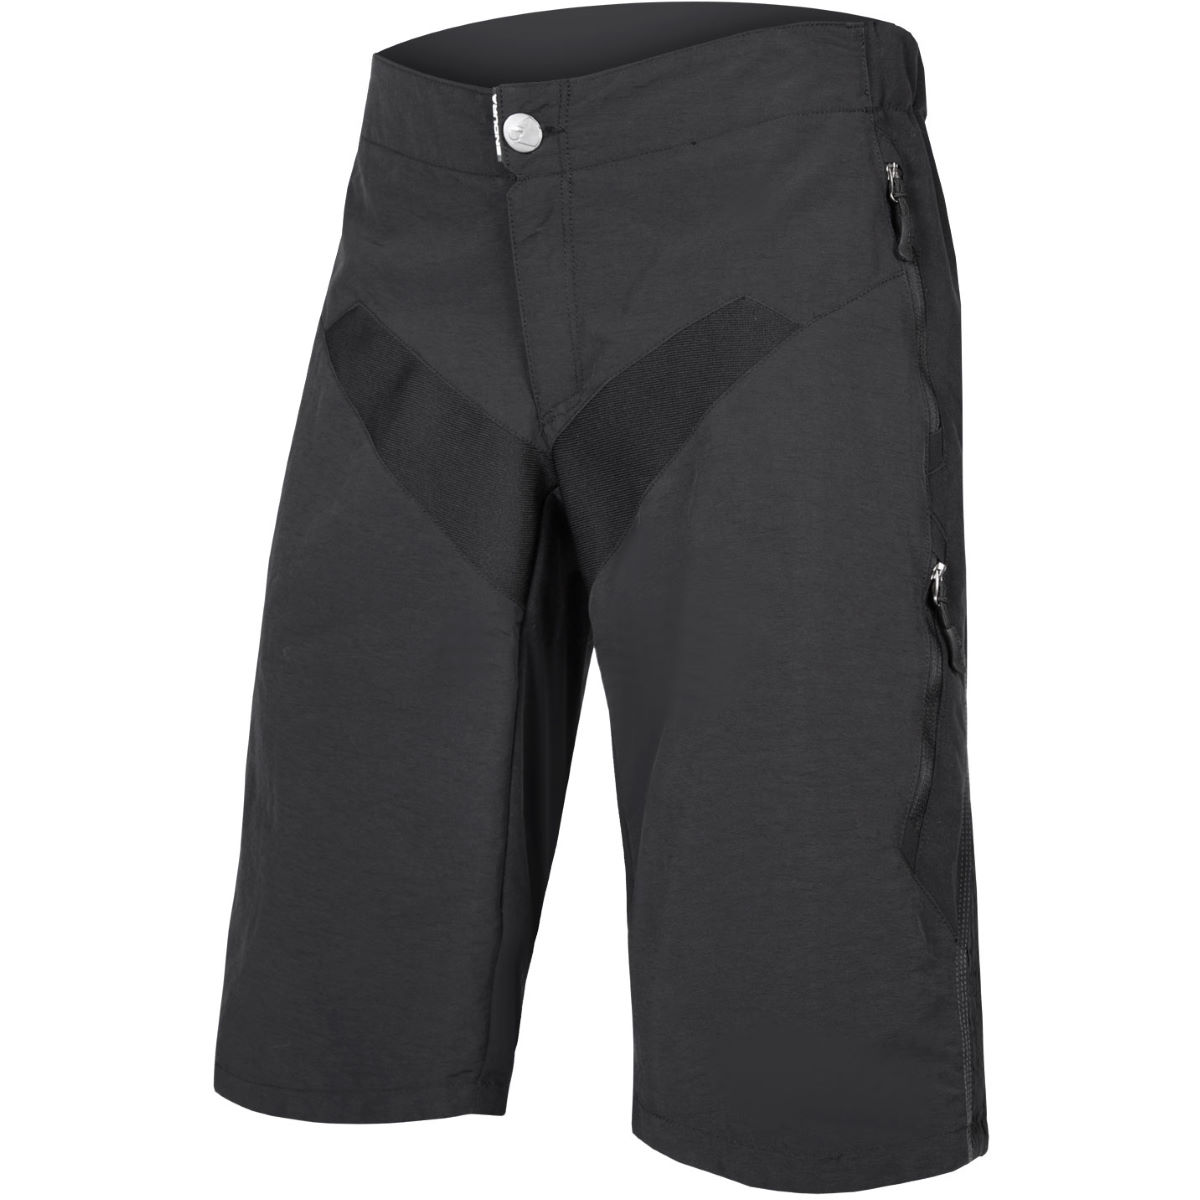 Endura SingleTrack Shorts   Baggy Shorts